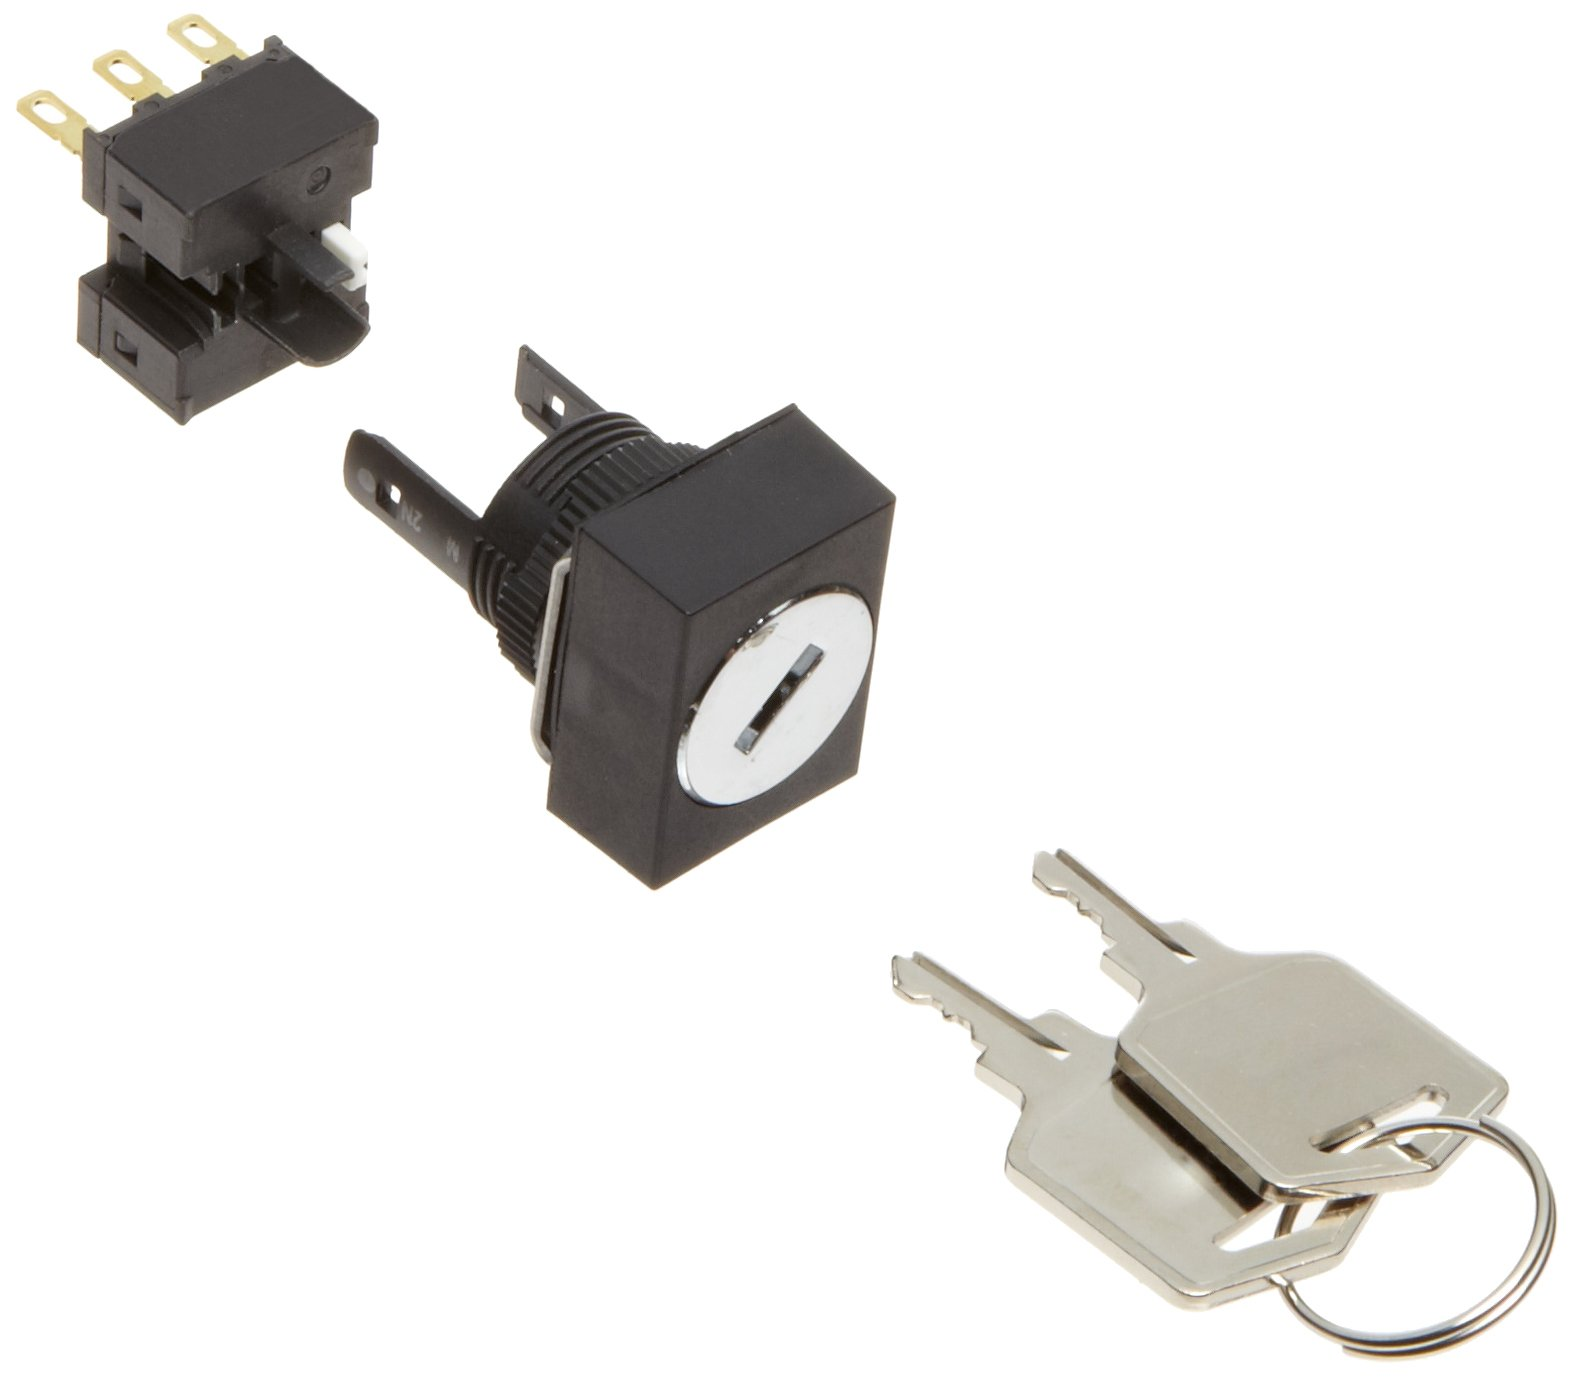 Omron A165K-J2ML-1 Key Type Selector and Switch, Solder Terminal, IP65 Oil Resistant, 16mm Mounting Aperture, 2 Notches, Manual Reset Method, Left Key Release Postion, Rectangular,Single Pole Double Throw Contacts